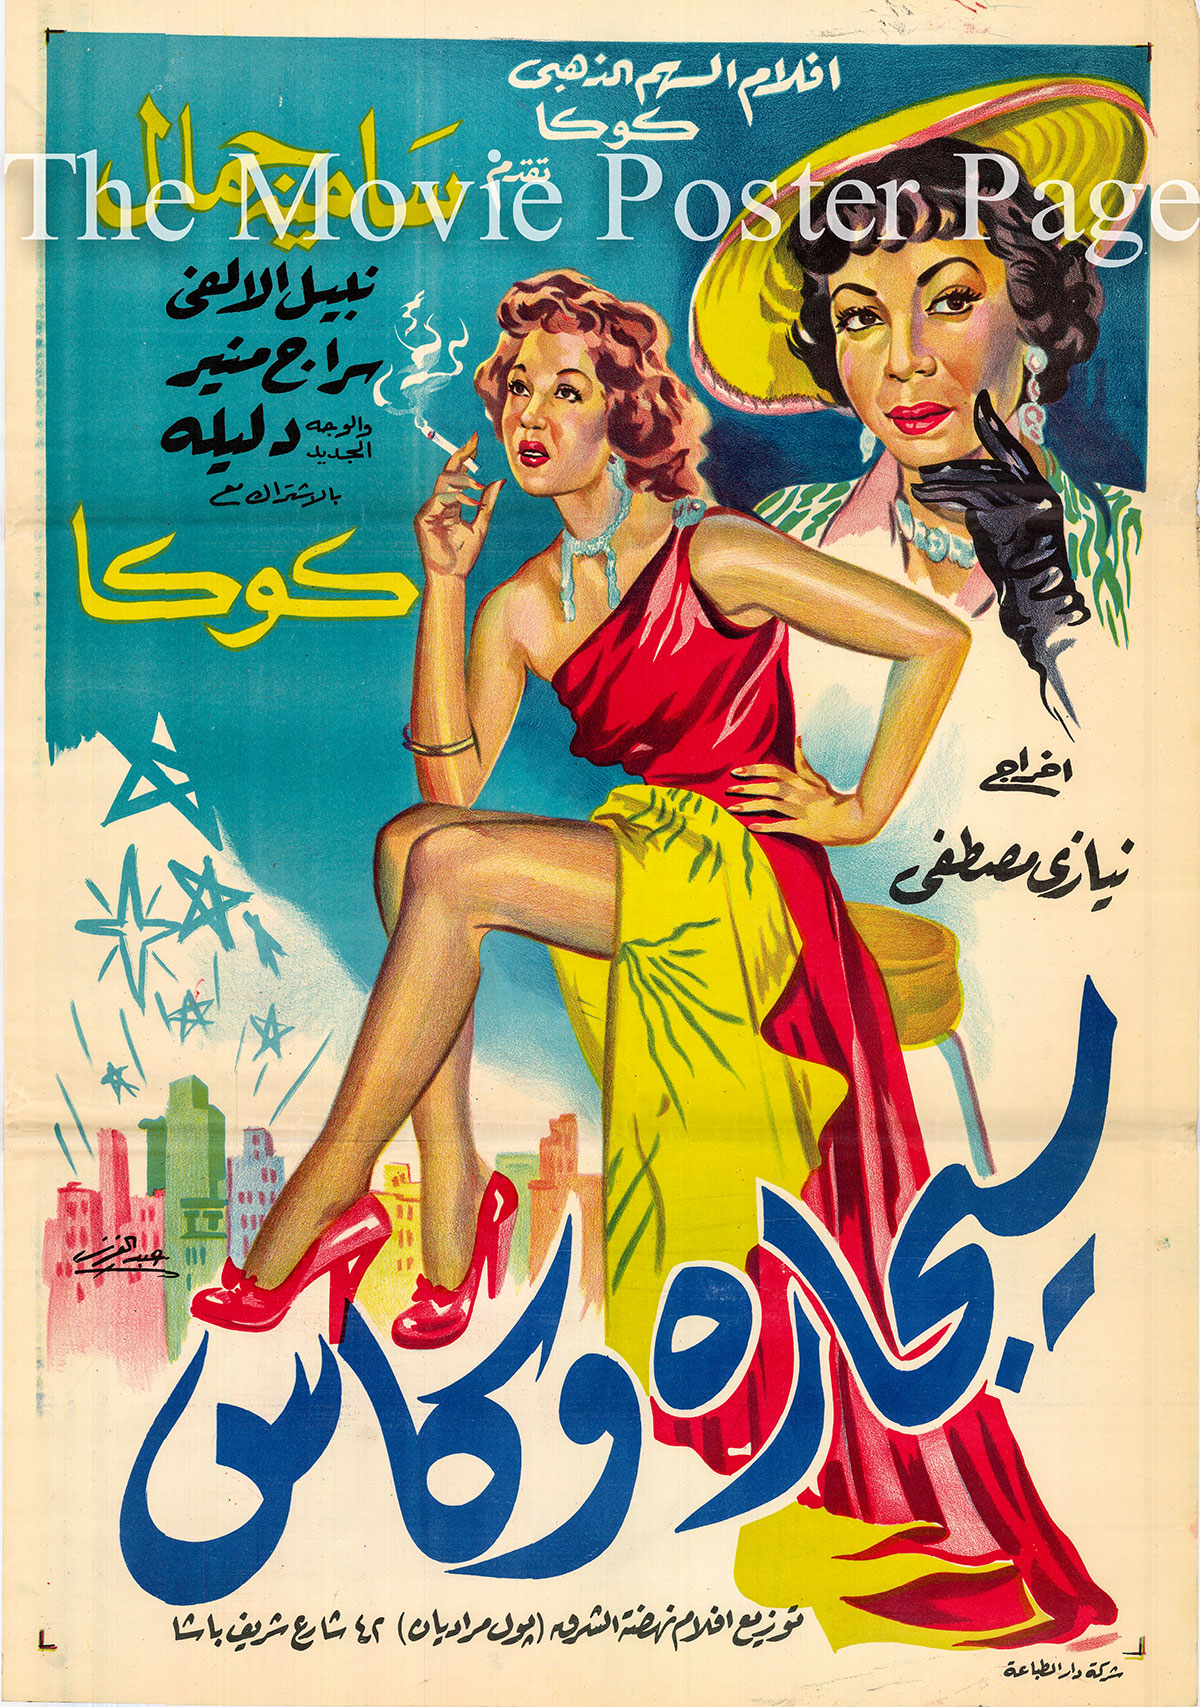 Pictured is an Egyptian promotional poster for the 1955 Niazi Mostafa film A Cigarette and a Glass starring Samia Gamal.